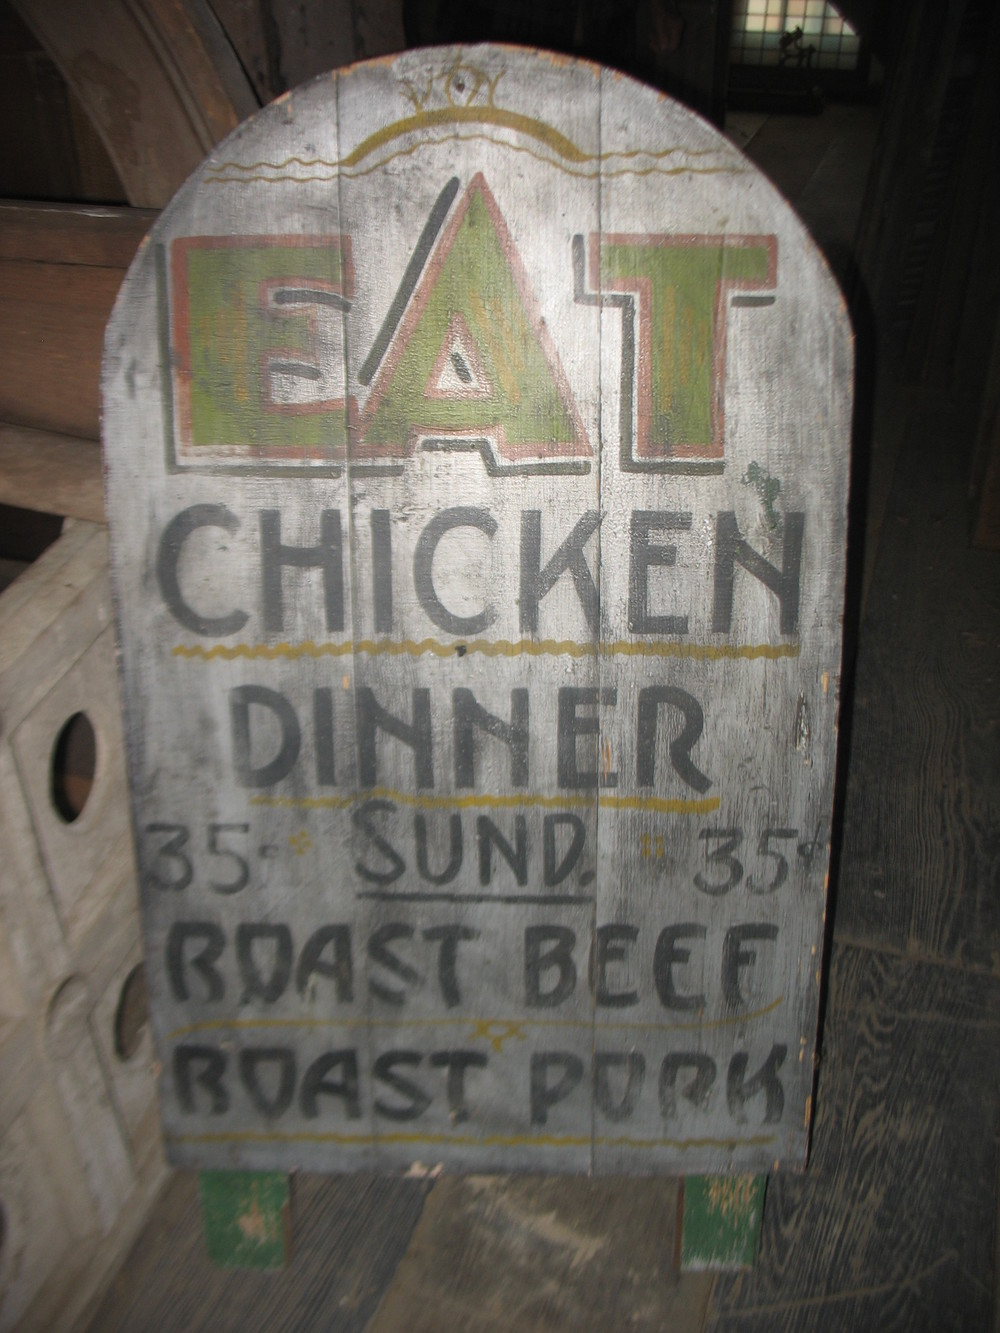 1920s Advertising Sign for restaurant in Kentucky showing prices for Sunday dinner. Measures 4 feet by 2 1/2 feet.